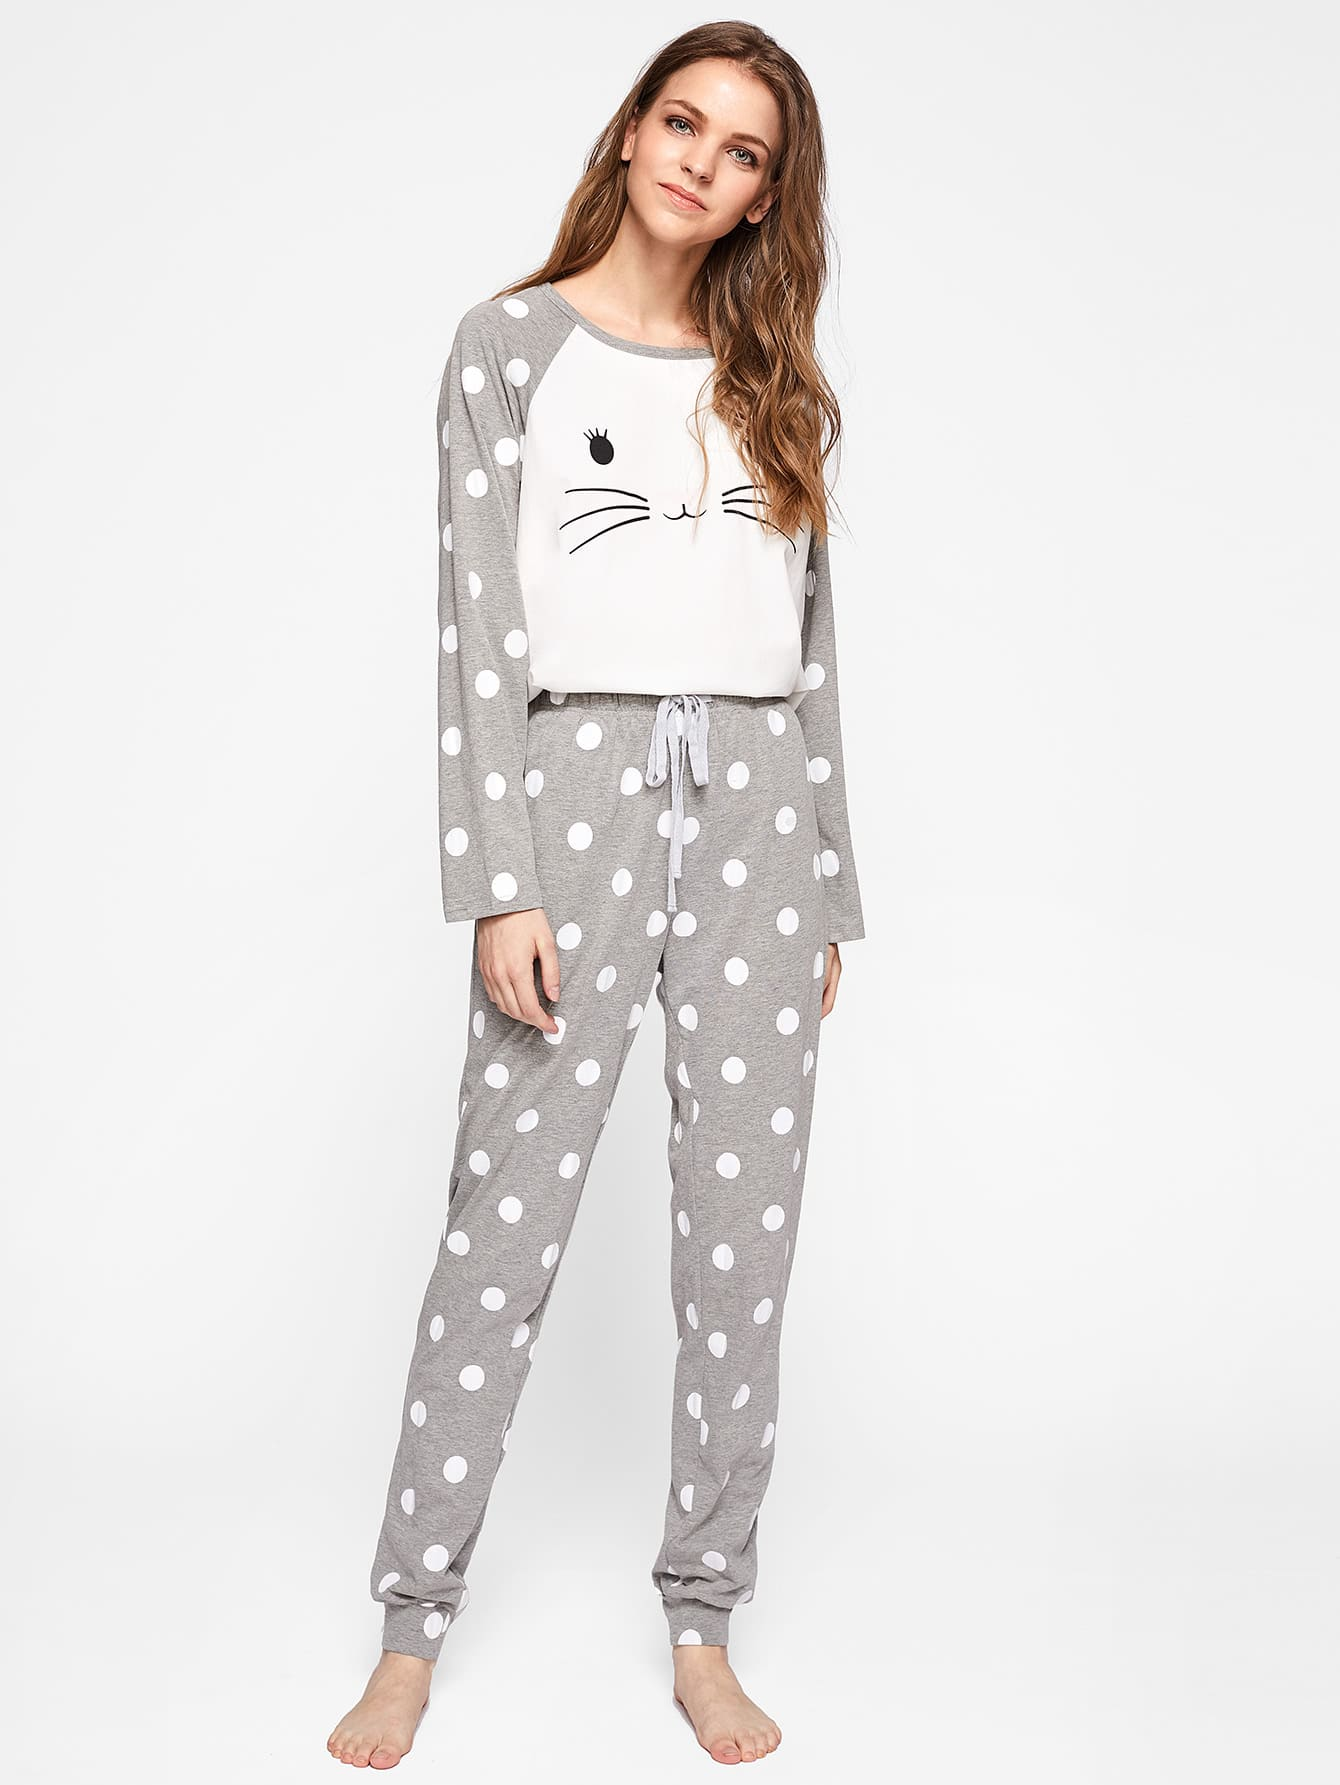 http://it.shein.com/Polka-Dot-Raglan-Sleeve-Graphic-Tee-And-Pants-Pajama-Set-p-375116-cat-1880.html